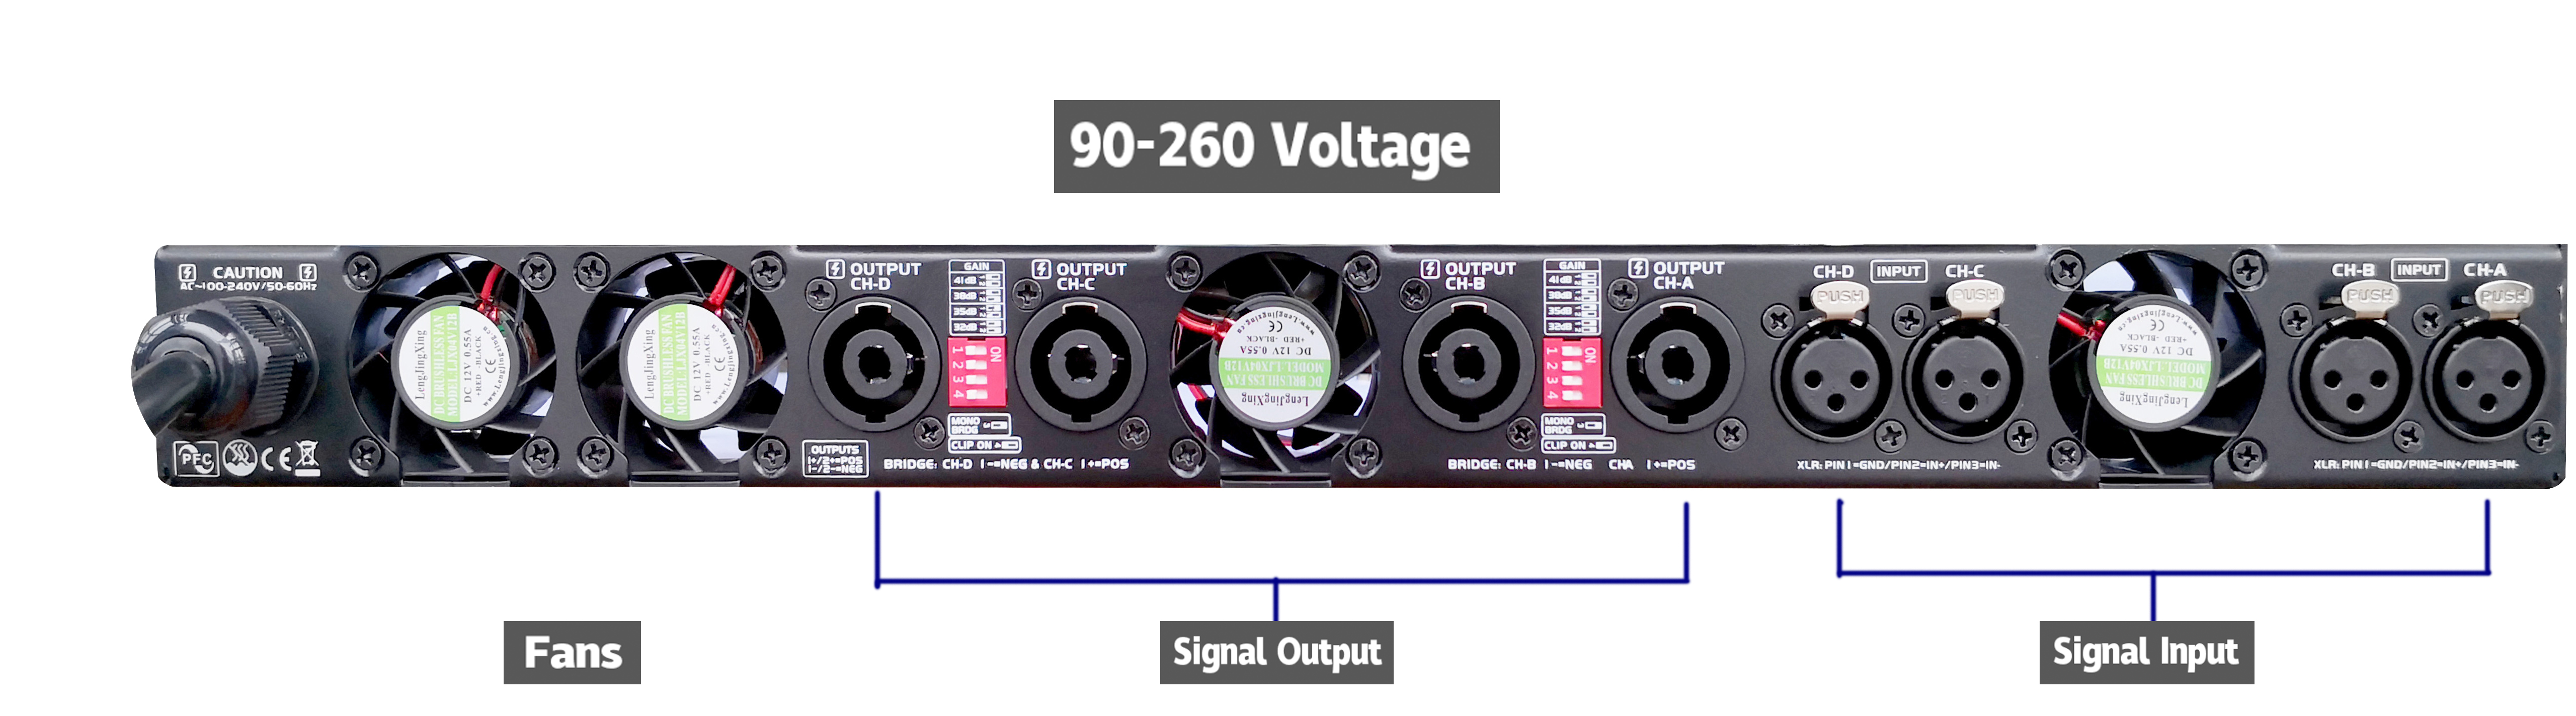 3000w 1U Digital Power Verstärker K30